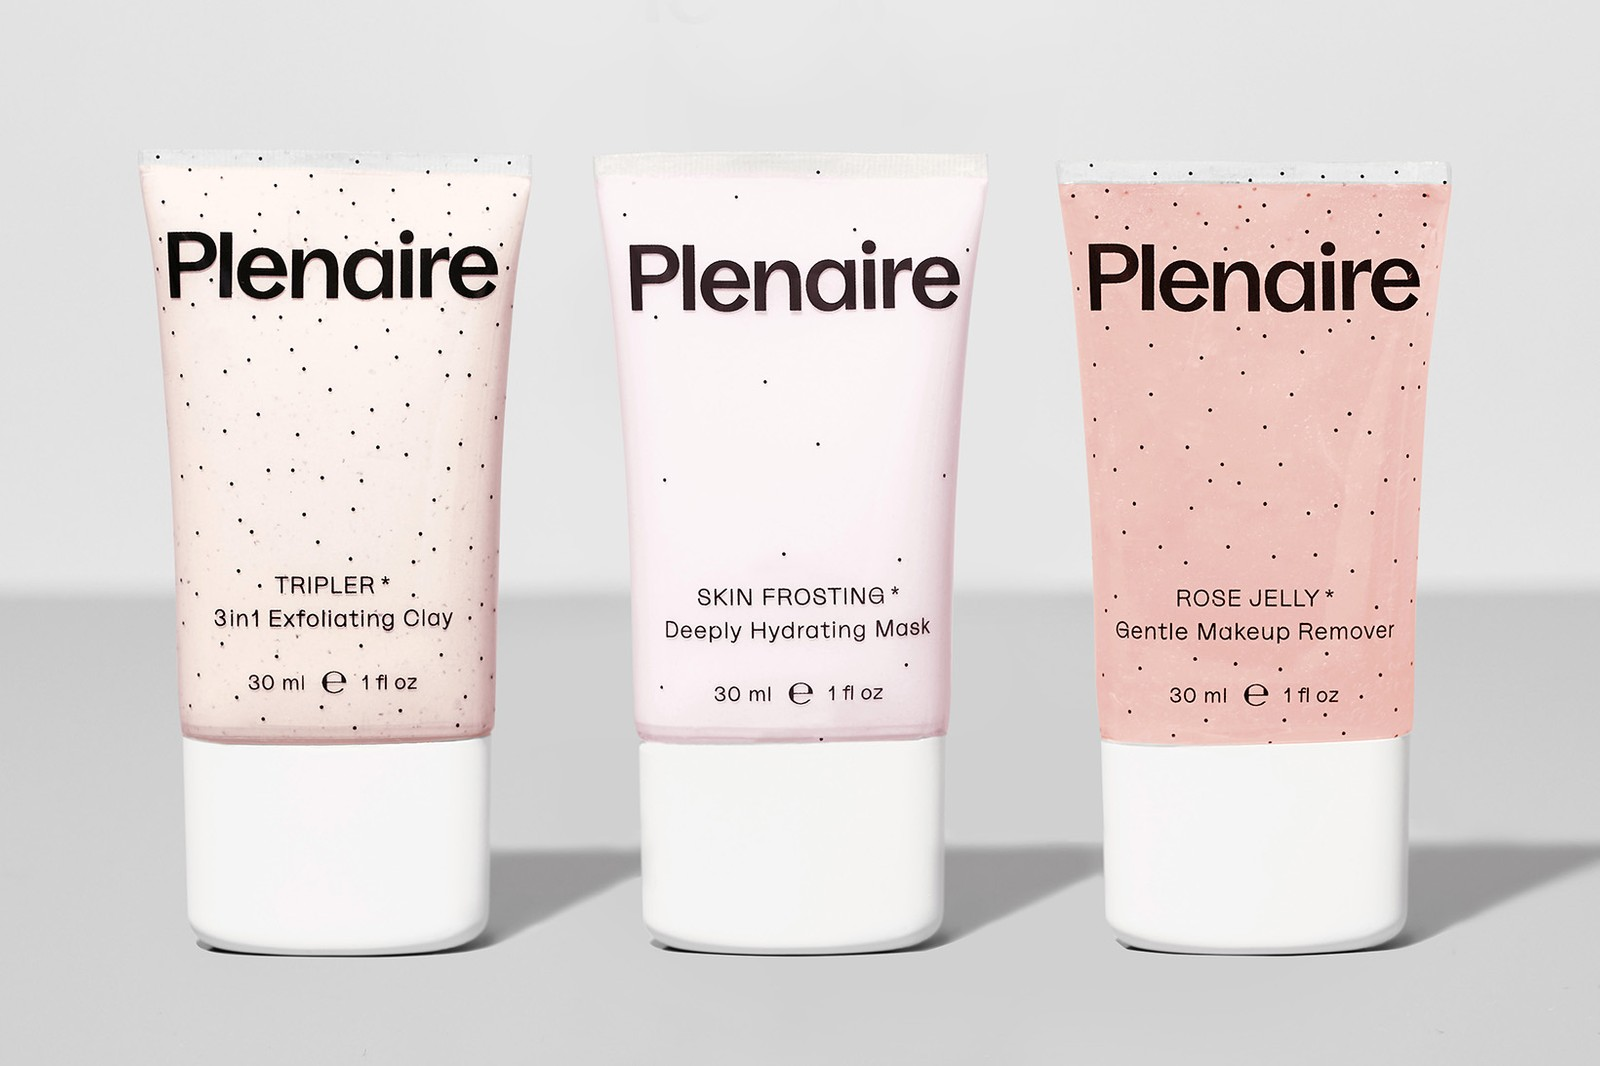 Plenaire Sustainable Gen Z Skincare Beauty Brand UK Vegan Cruelty Free Ethical Cleansers Masks Blemish Treatment